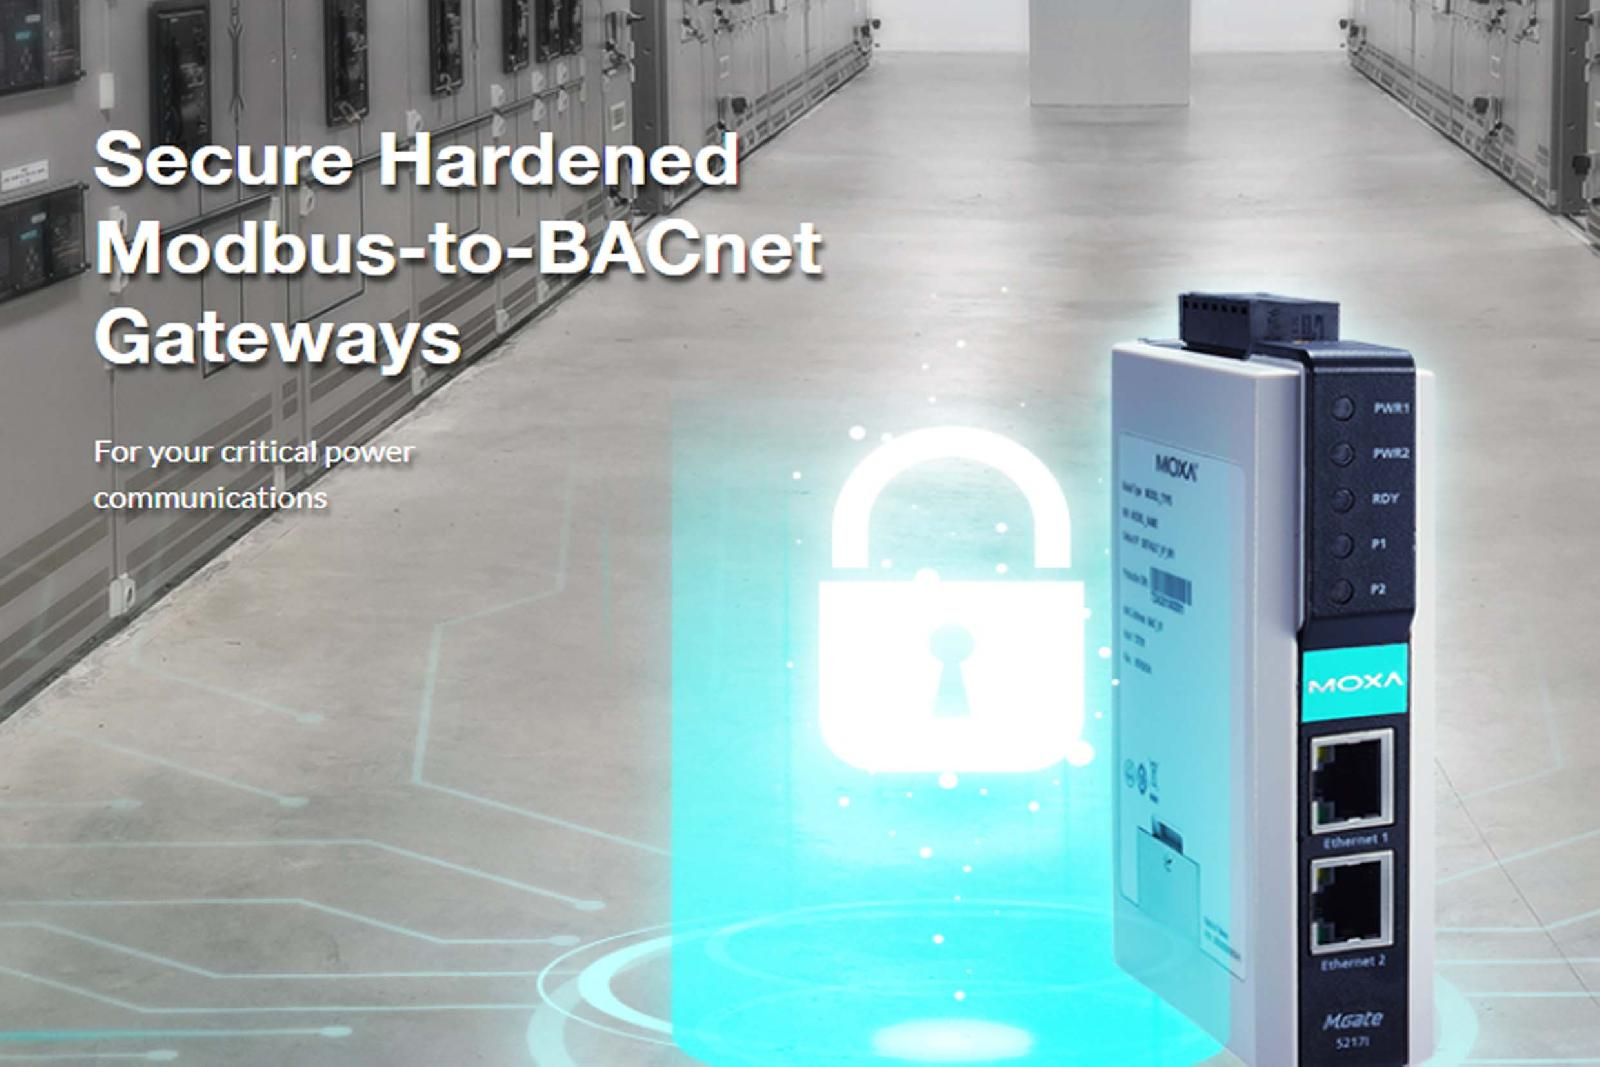 MGate 5217 Series Modbus-to-BACnet Gateways